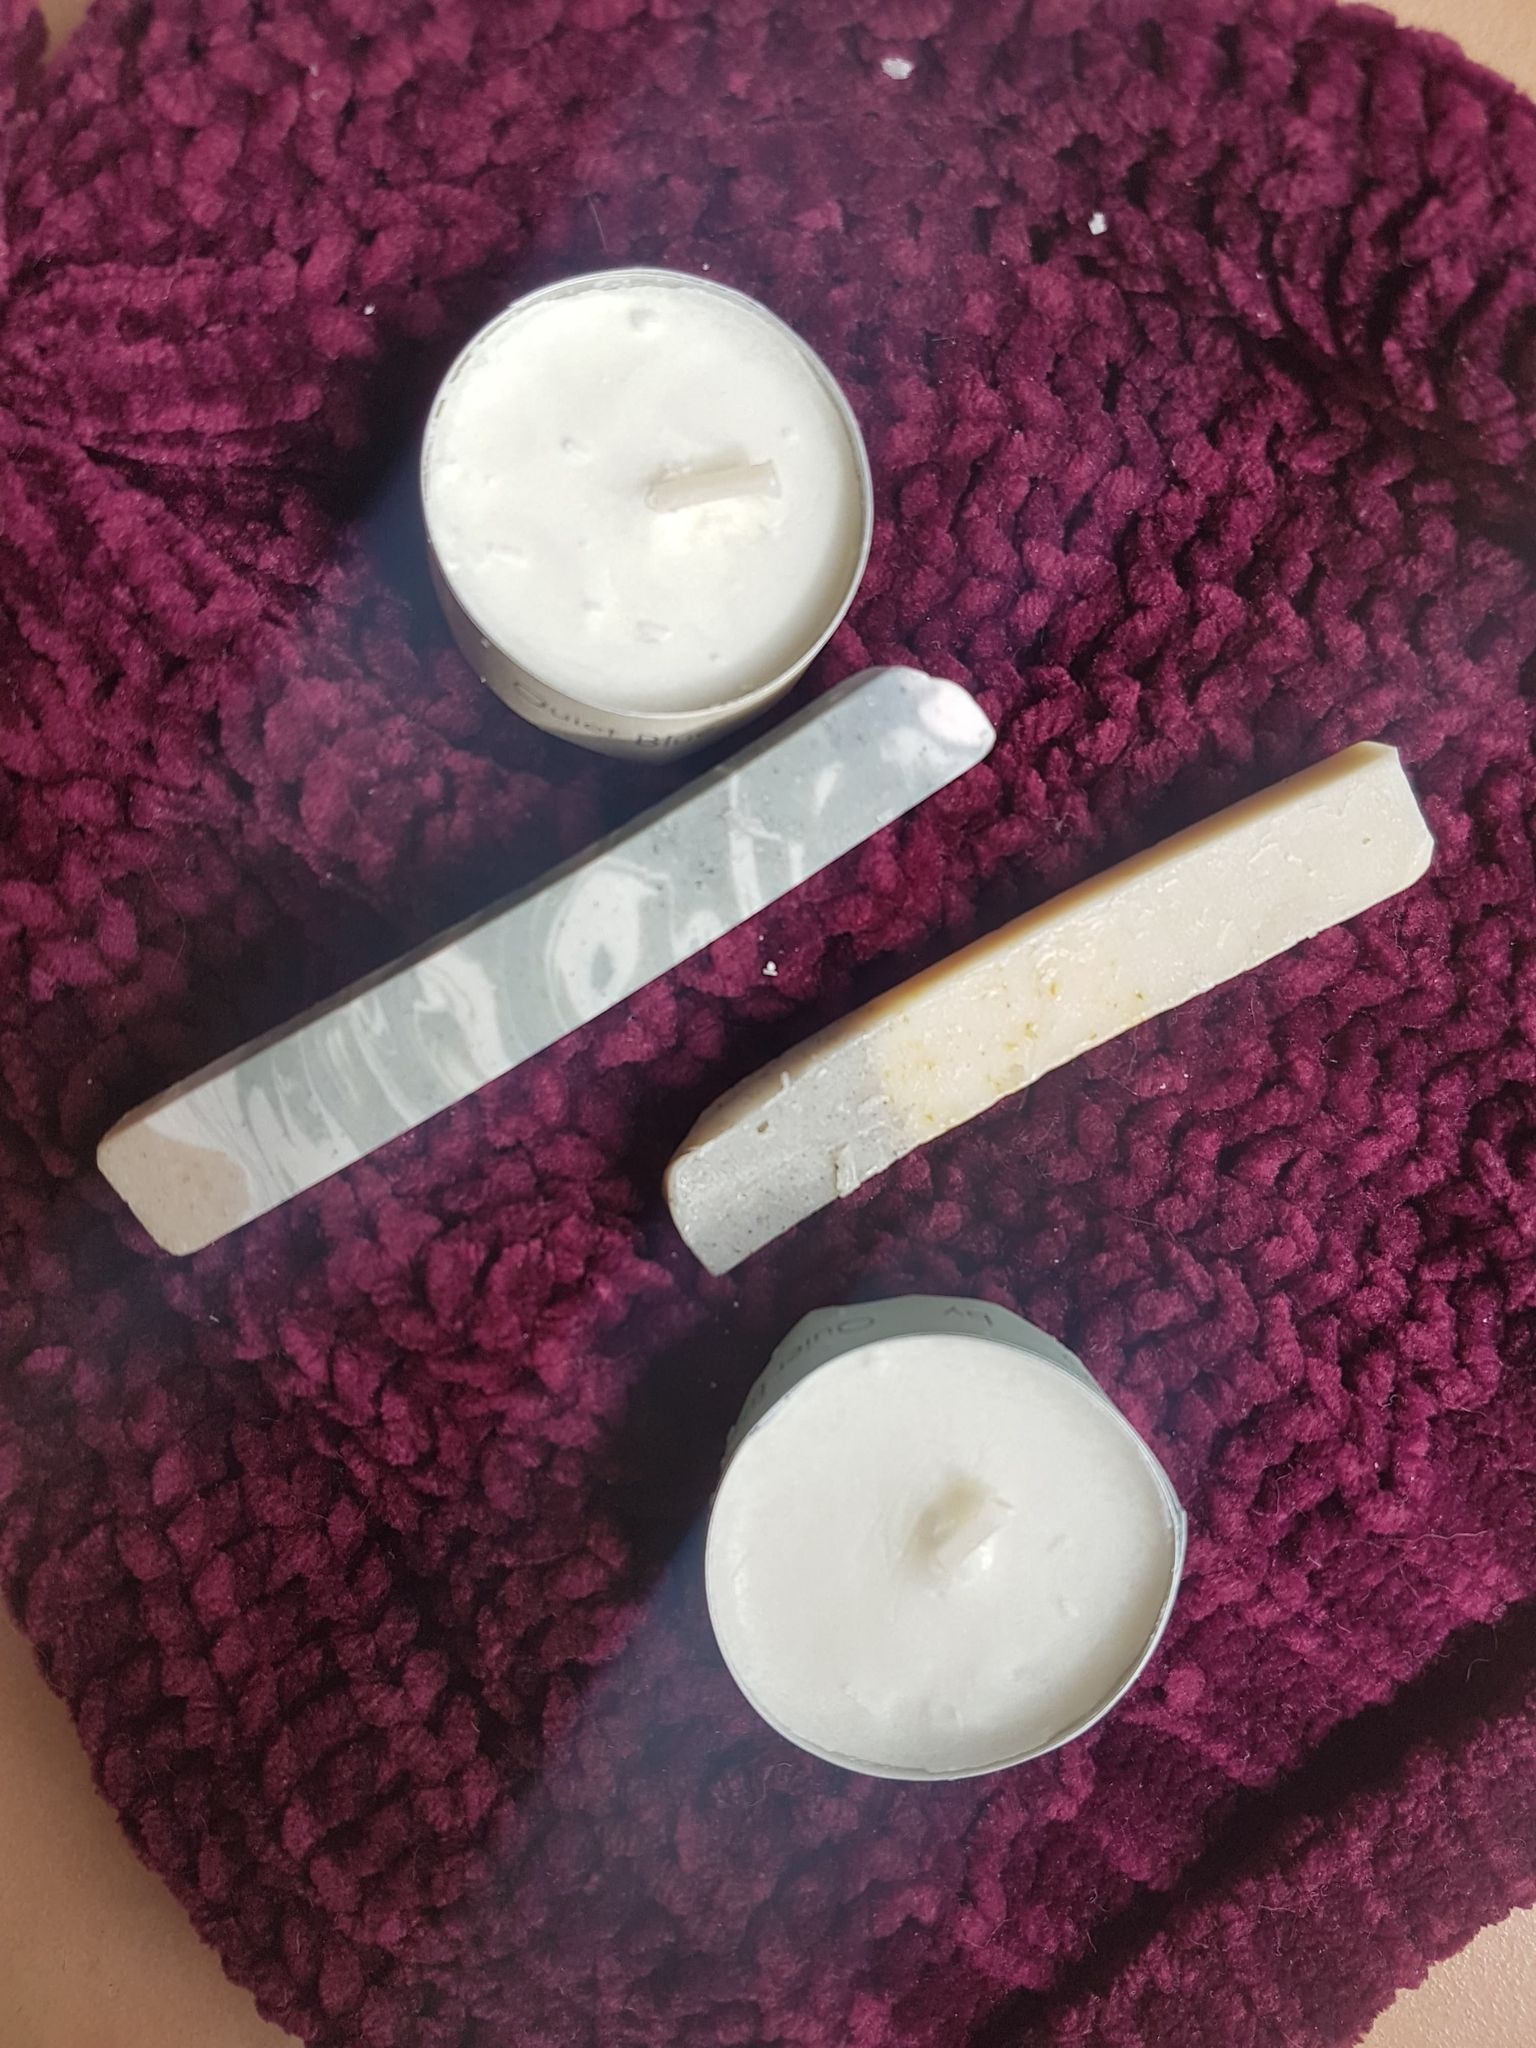 Quiet Blue sample size Candles and Soaps on a textured wooly maroon coloured hat